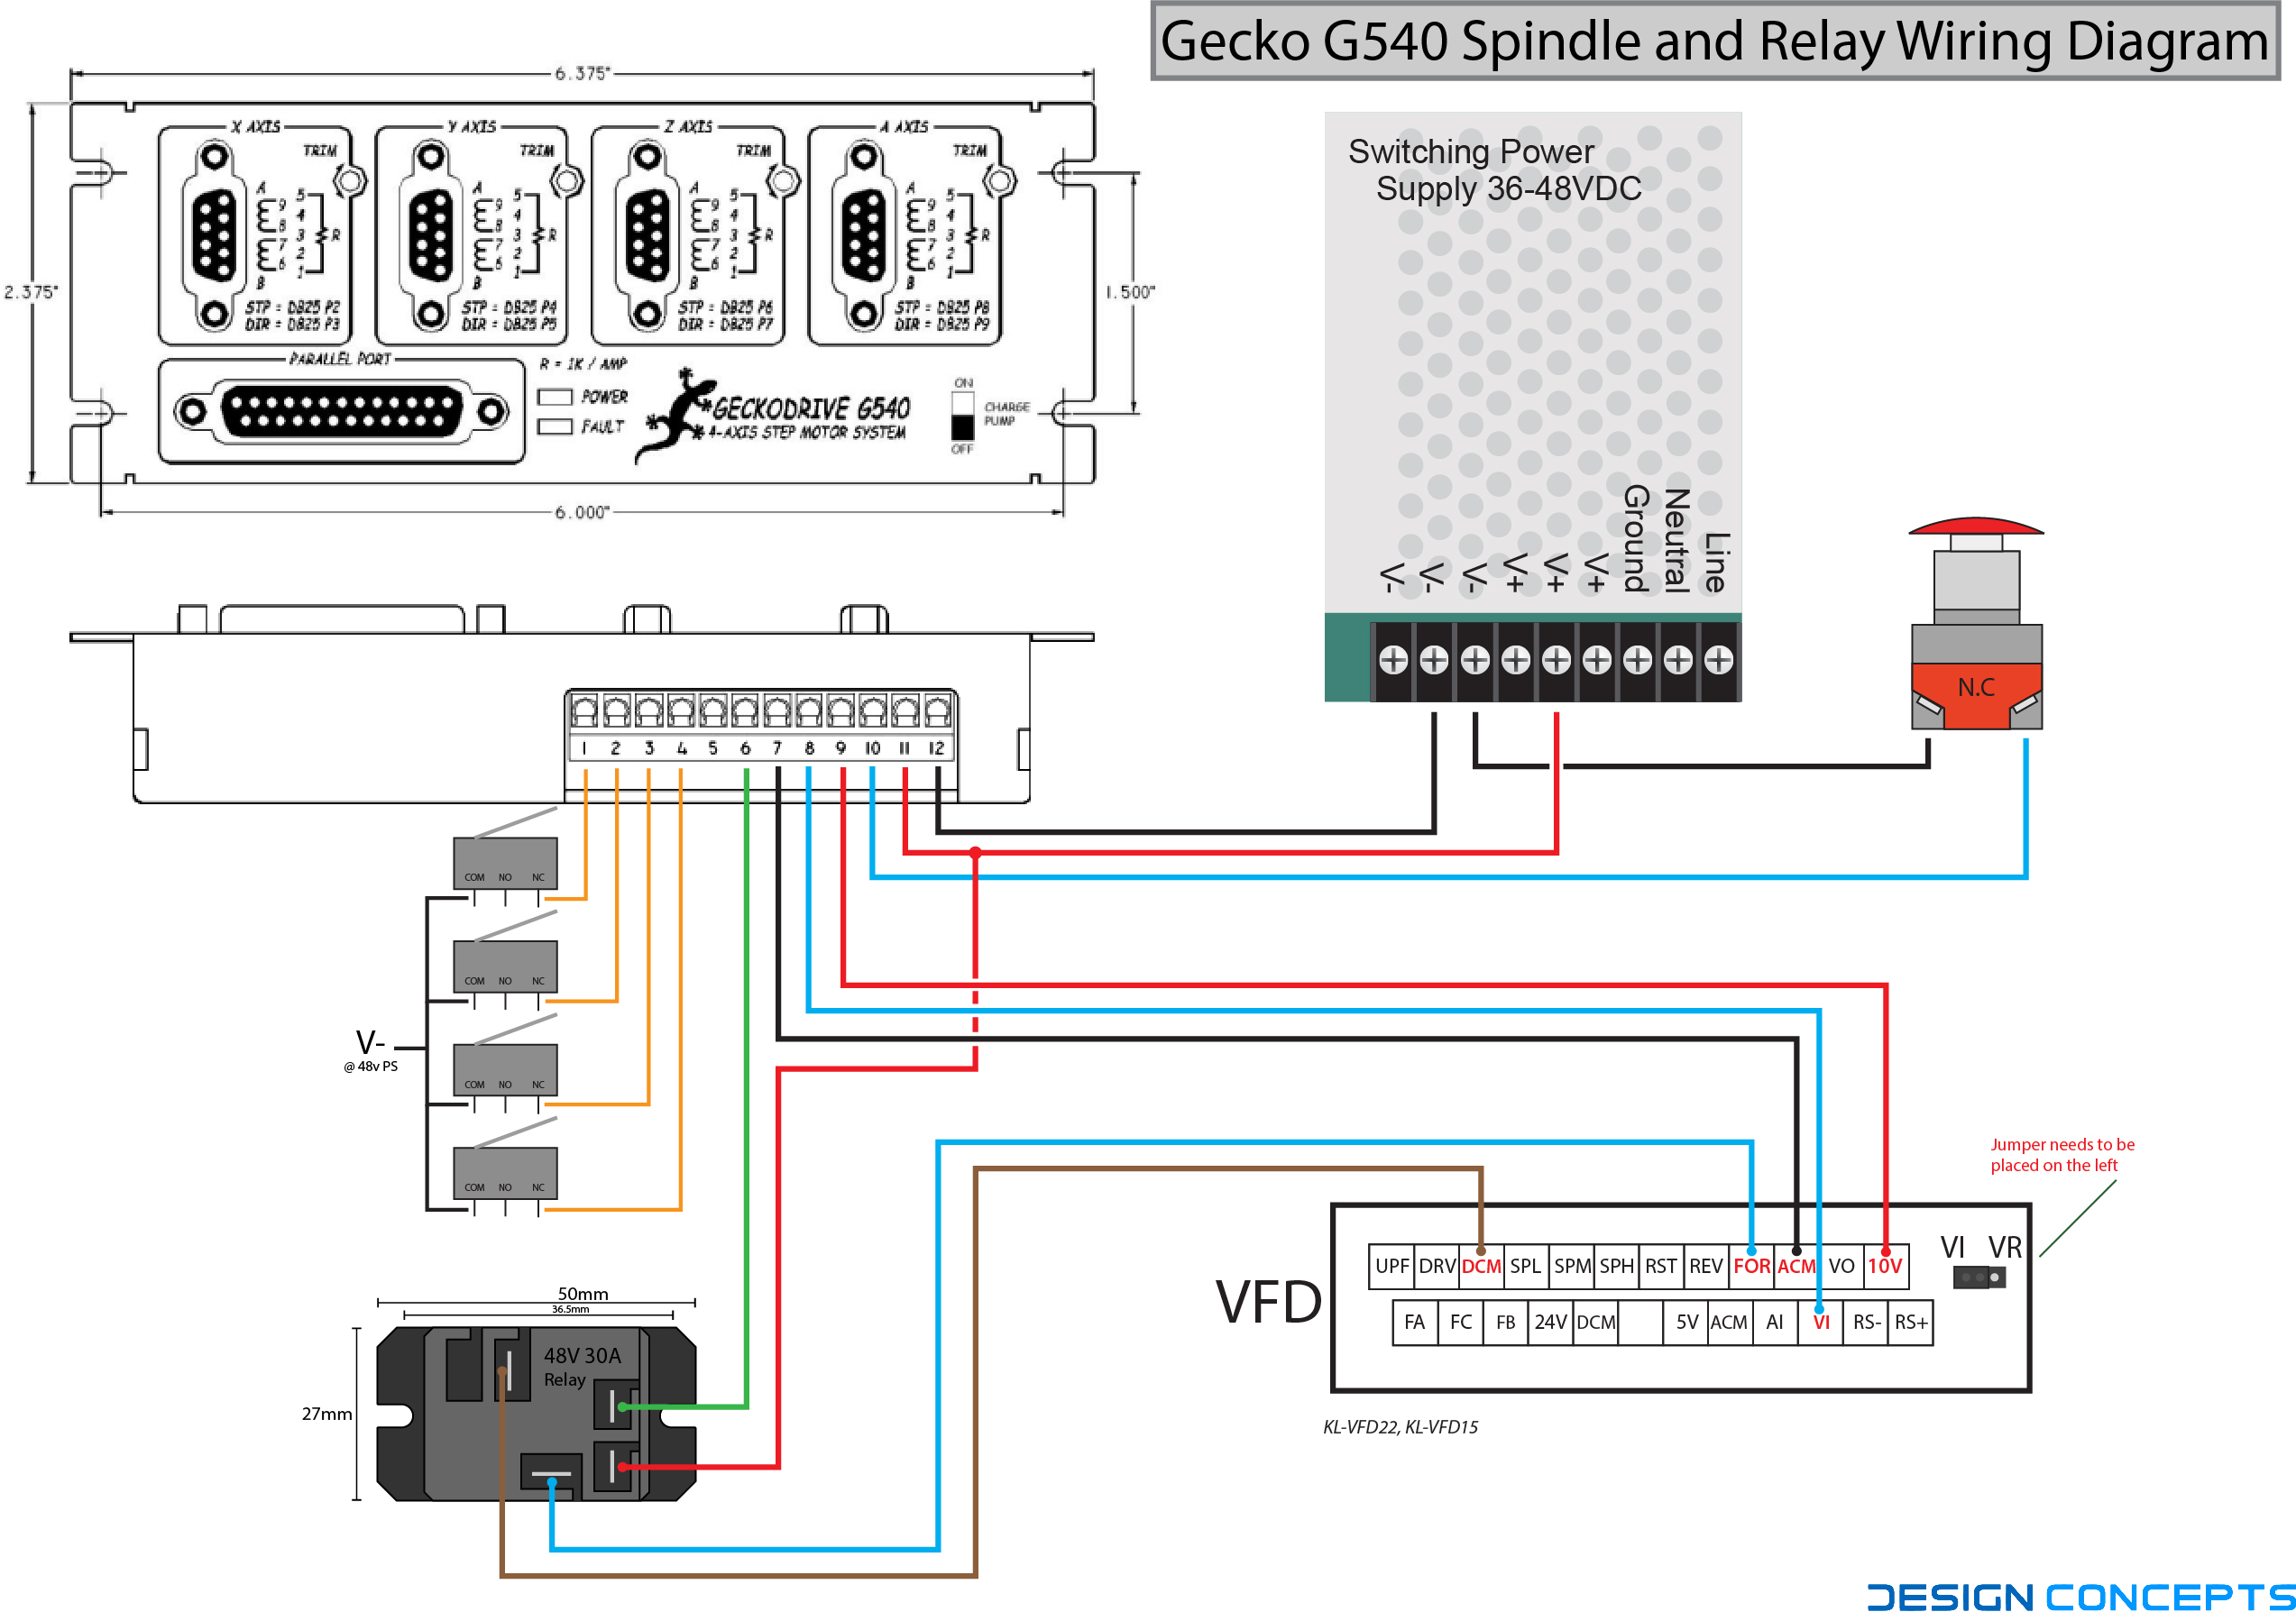 hight resolution of gecko g540 wiring diagram wiring diagram world gecko g540 wiring diagram gecko g540 wiring diagram